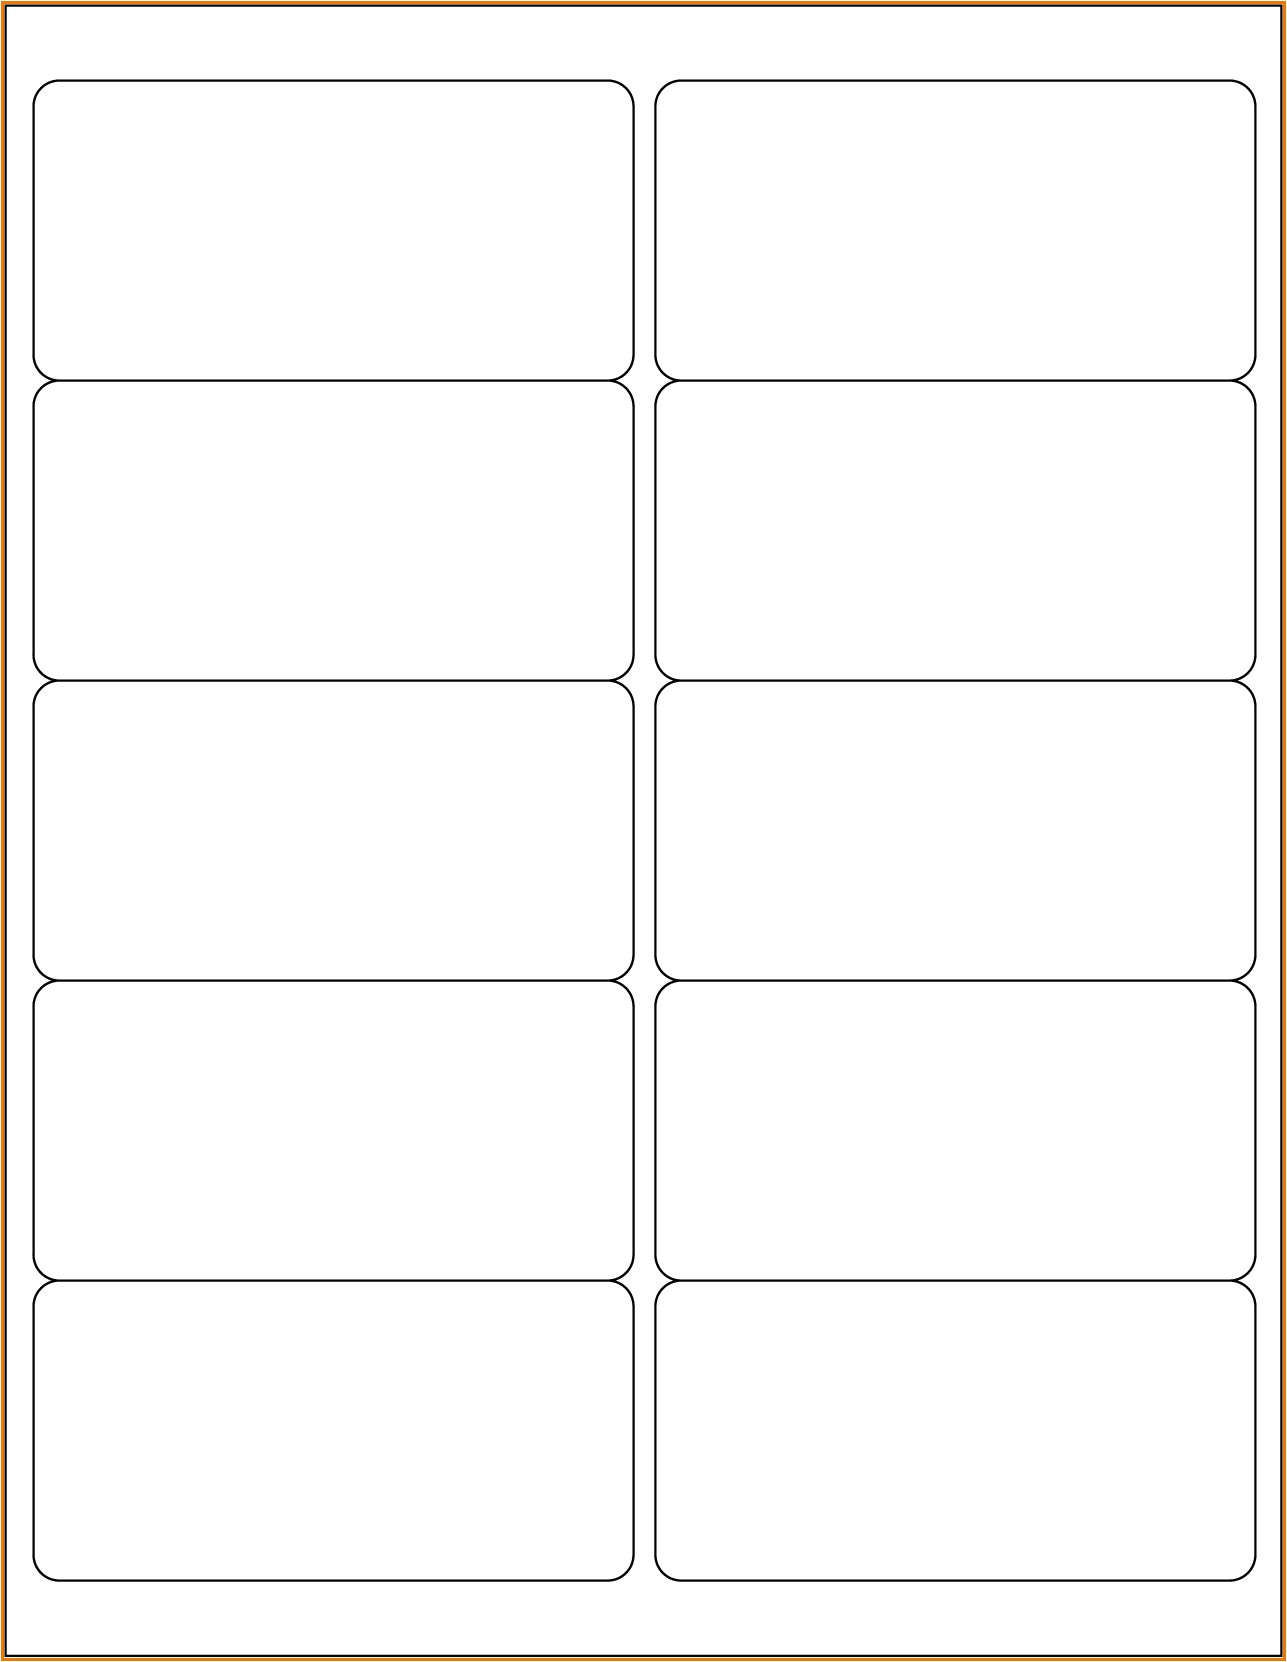 Free Avery Label Templates for Word Blank Avery 5163 Template Word Bing Images